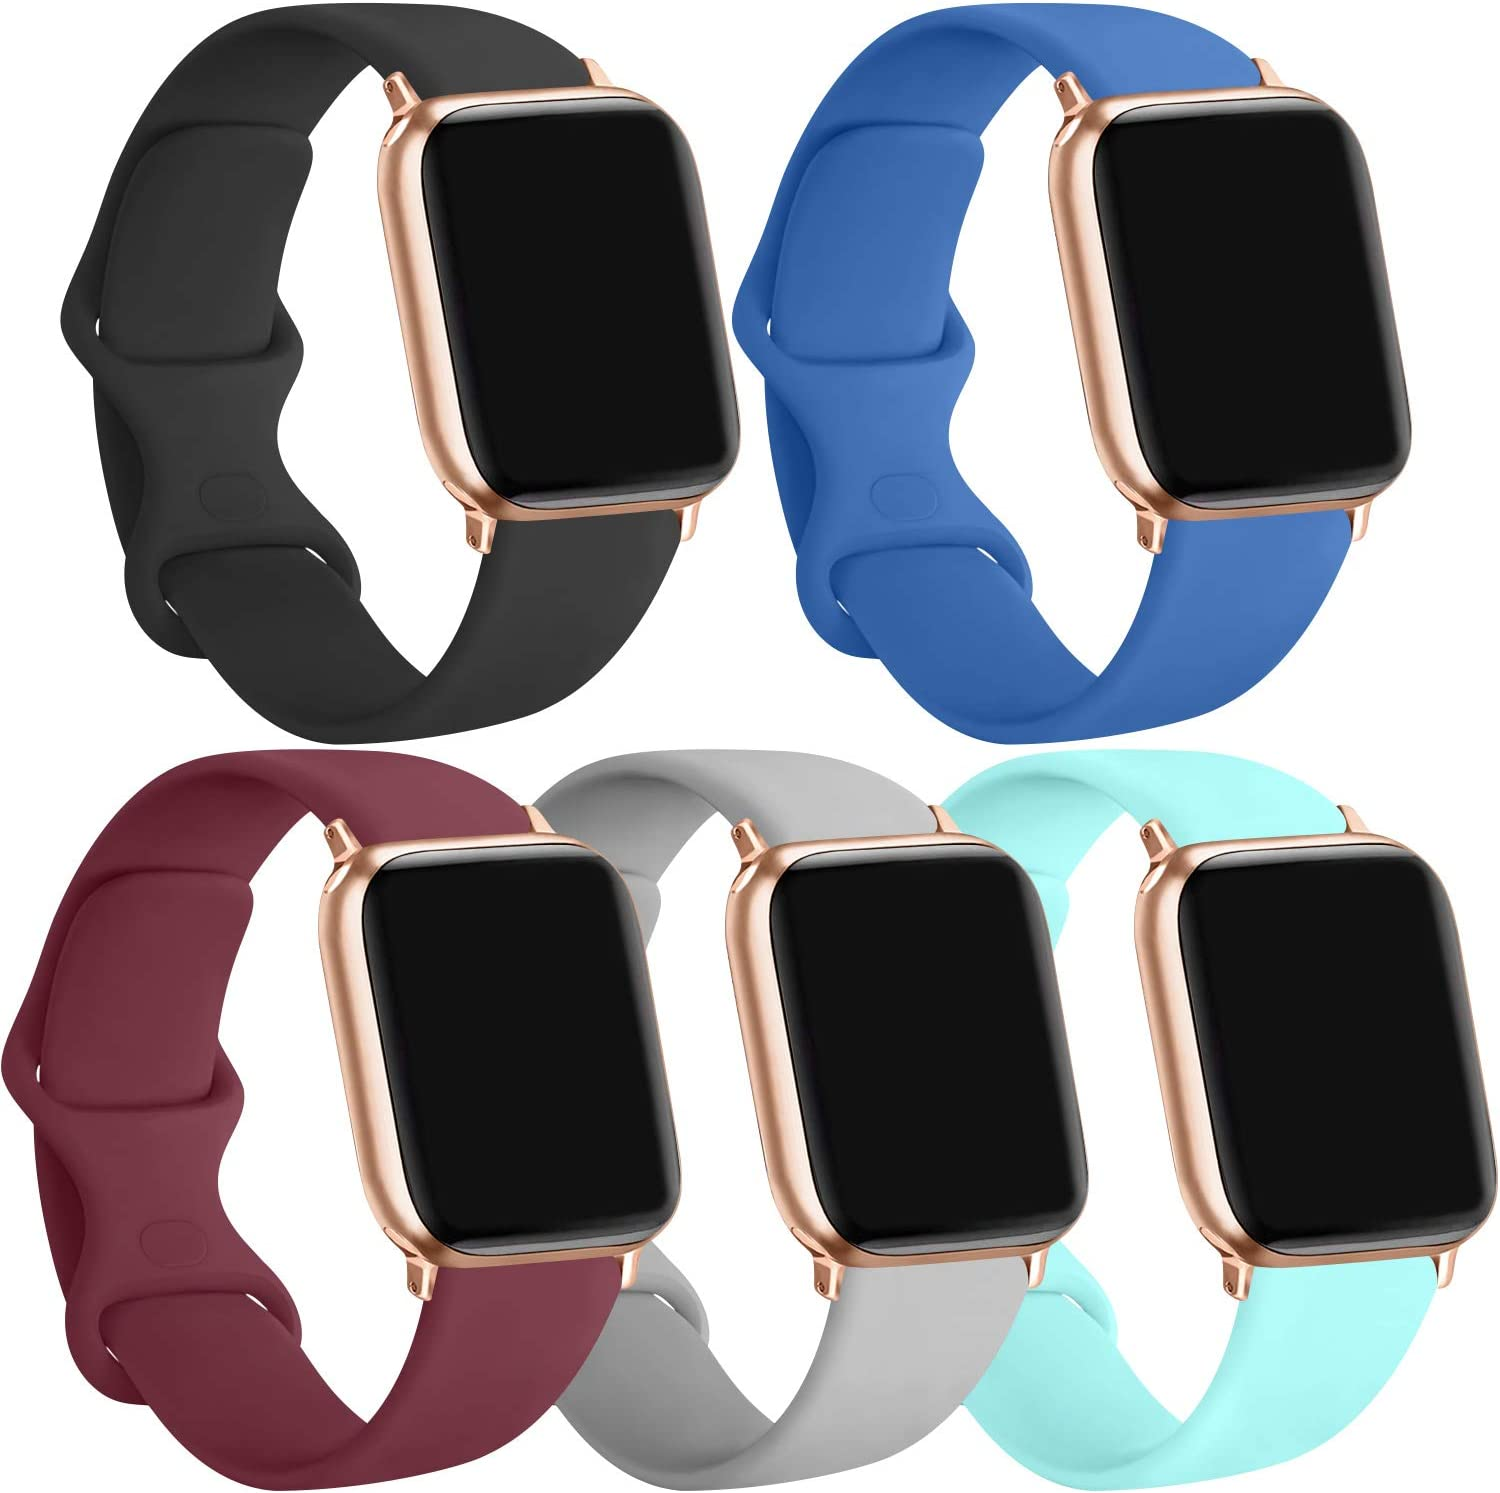 [5 Pack] Silicone Bands Compatible for Apple Watch Bands 42mm 44mm, Sport Band Compatible for iWatch Series 6 5 4 3 SE, Black/Wine red/Blue/Gray/Light Blue, 42mm/44mm-M/L